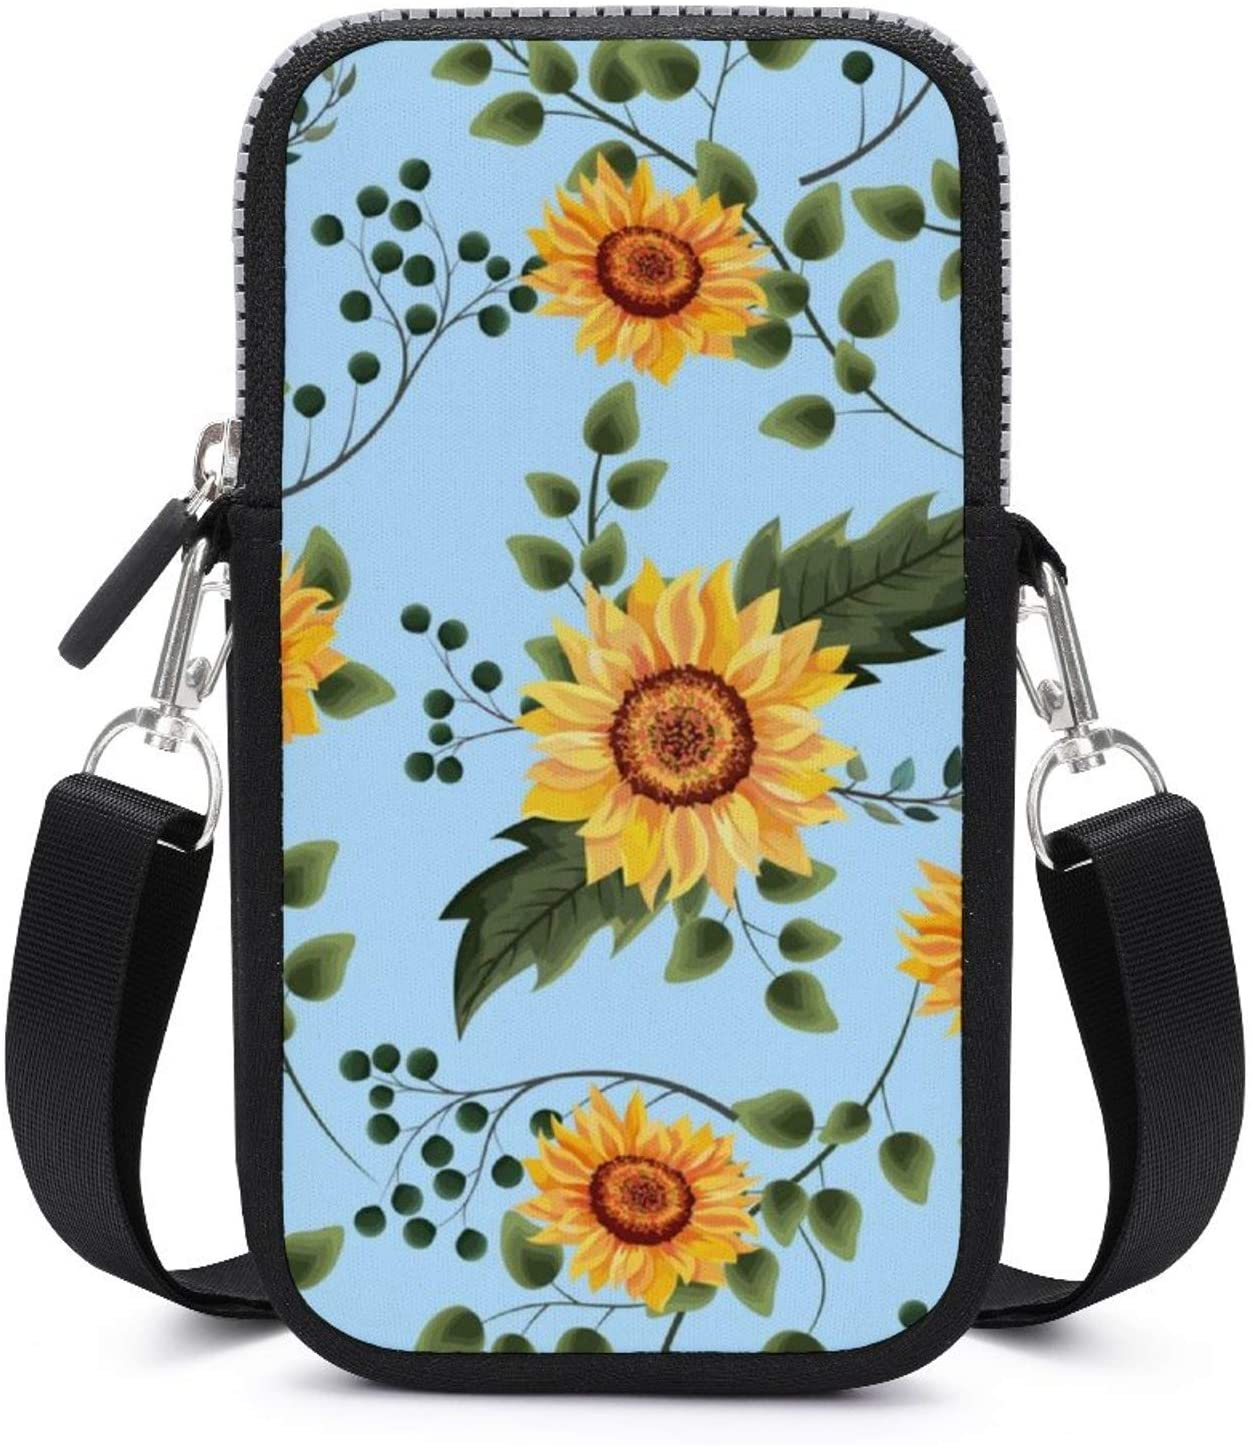 NiYoung Fashion Cell Phone Purse for Women and Girls - Small Crossbody Bag Shoulder Bag (Beautiful Sunflowers Pattern)